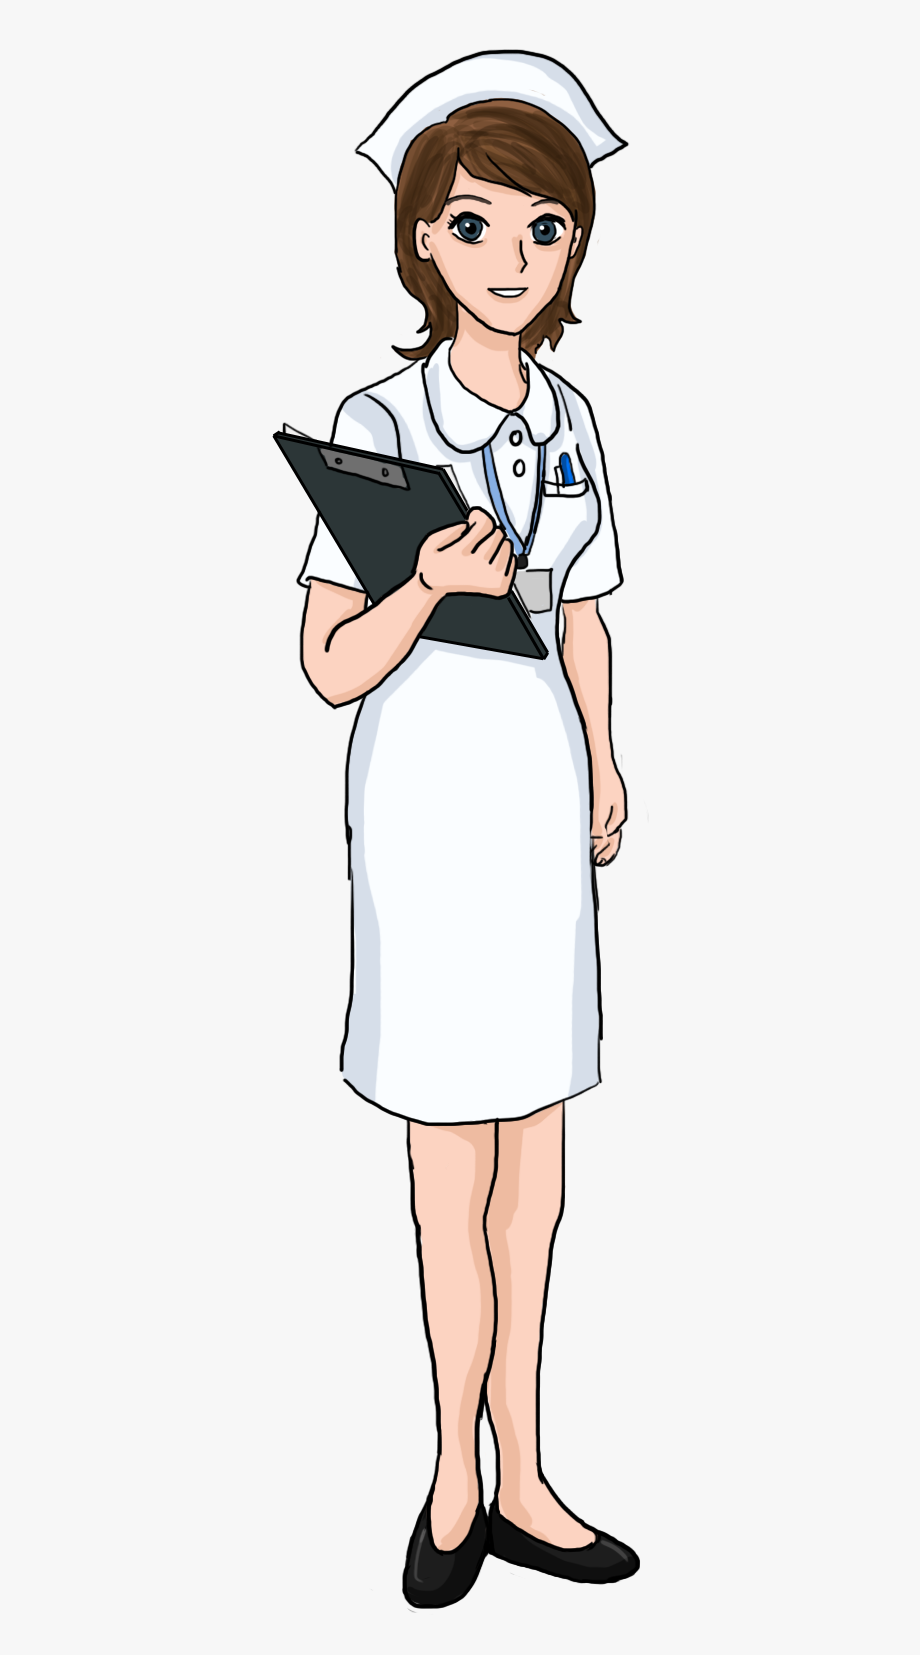 Cartoon pictures of nurses. Nursing clipart nursing staff